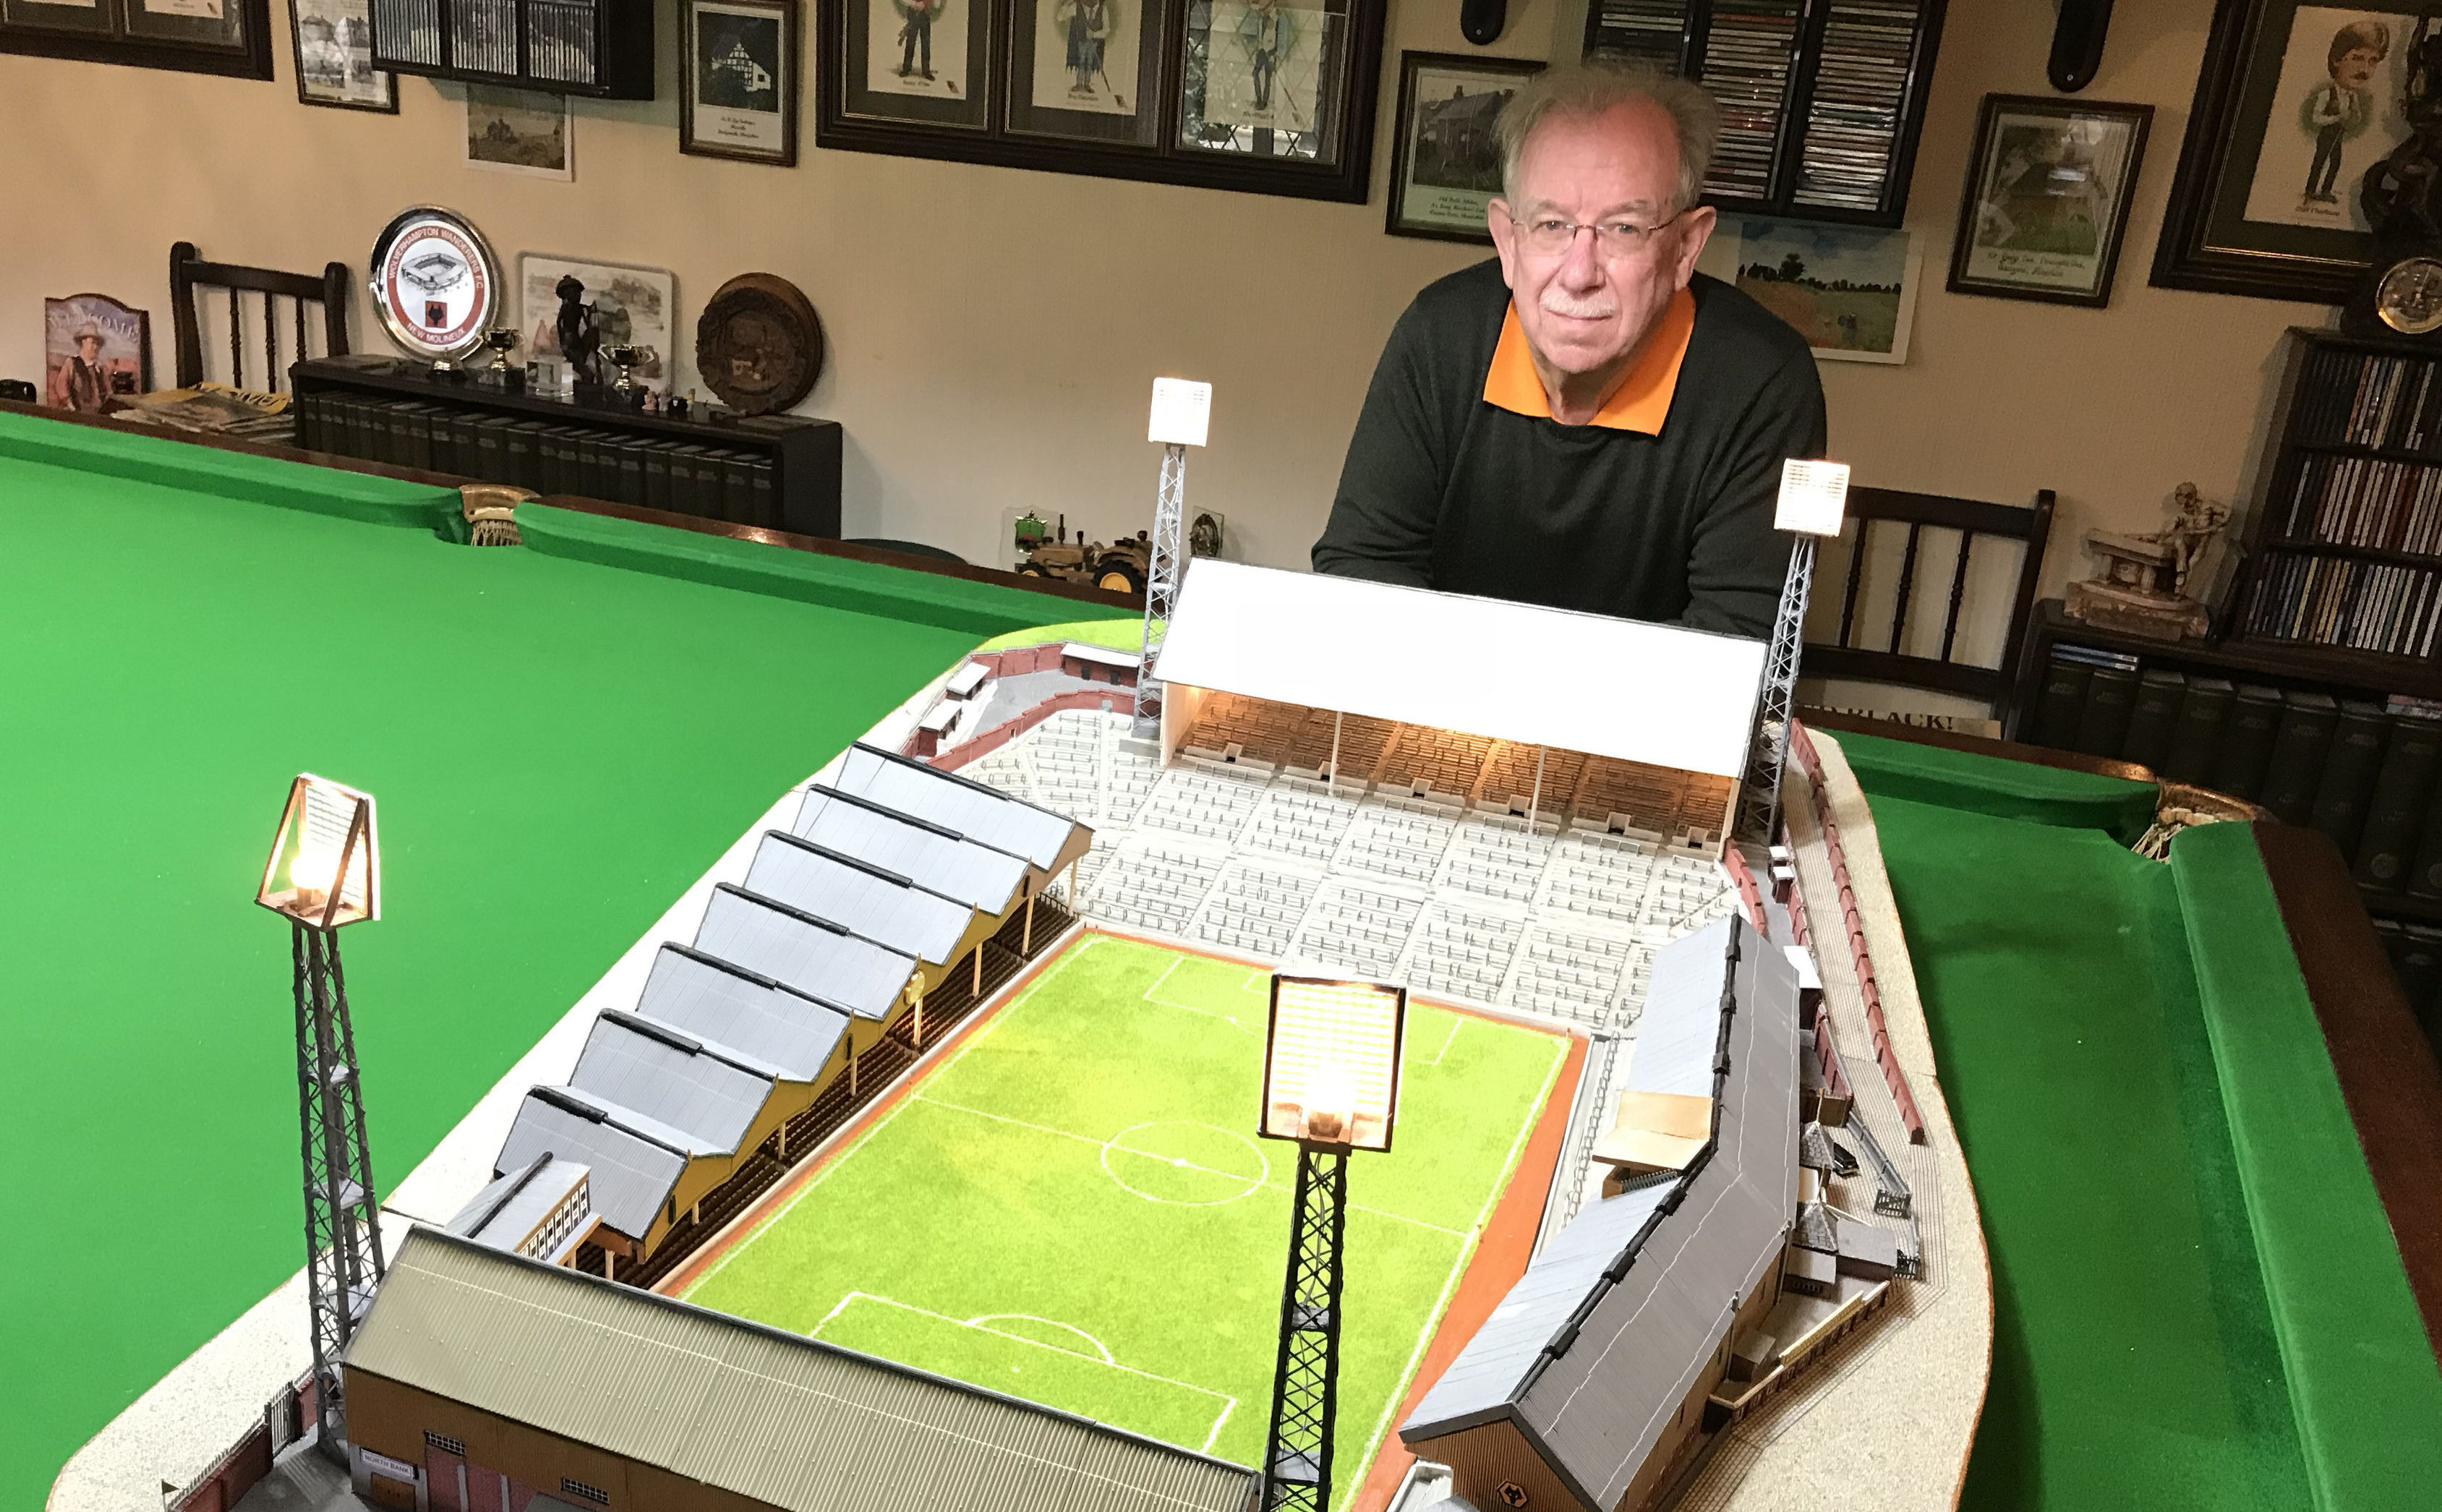 Retired accountant Chris Jepson has spent more than 500 hours making a scale model of the Molineux Stadium (Phil Barnett /PA Wire)